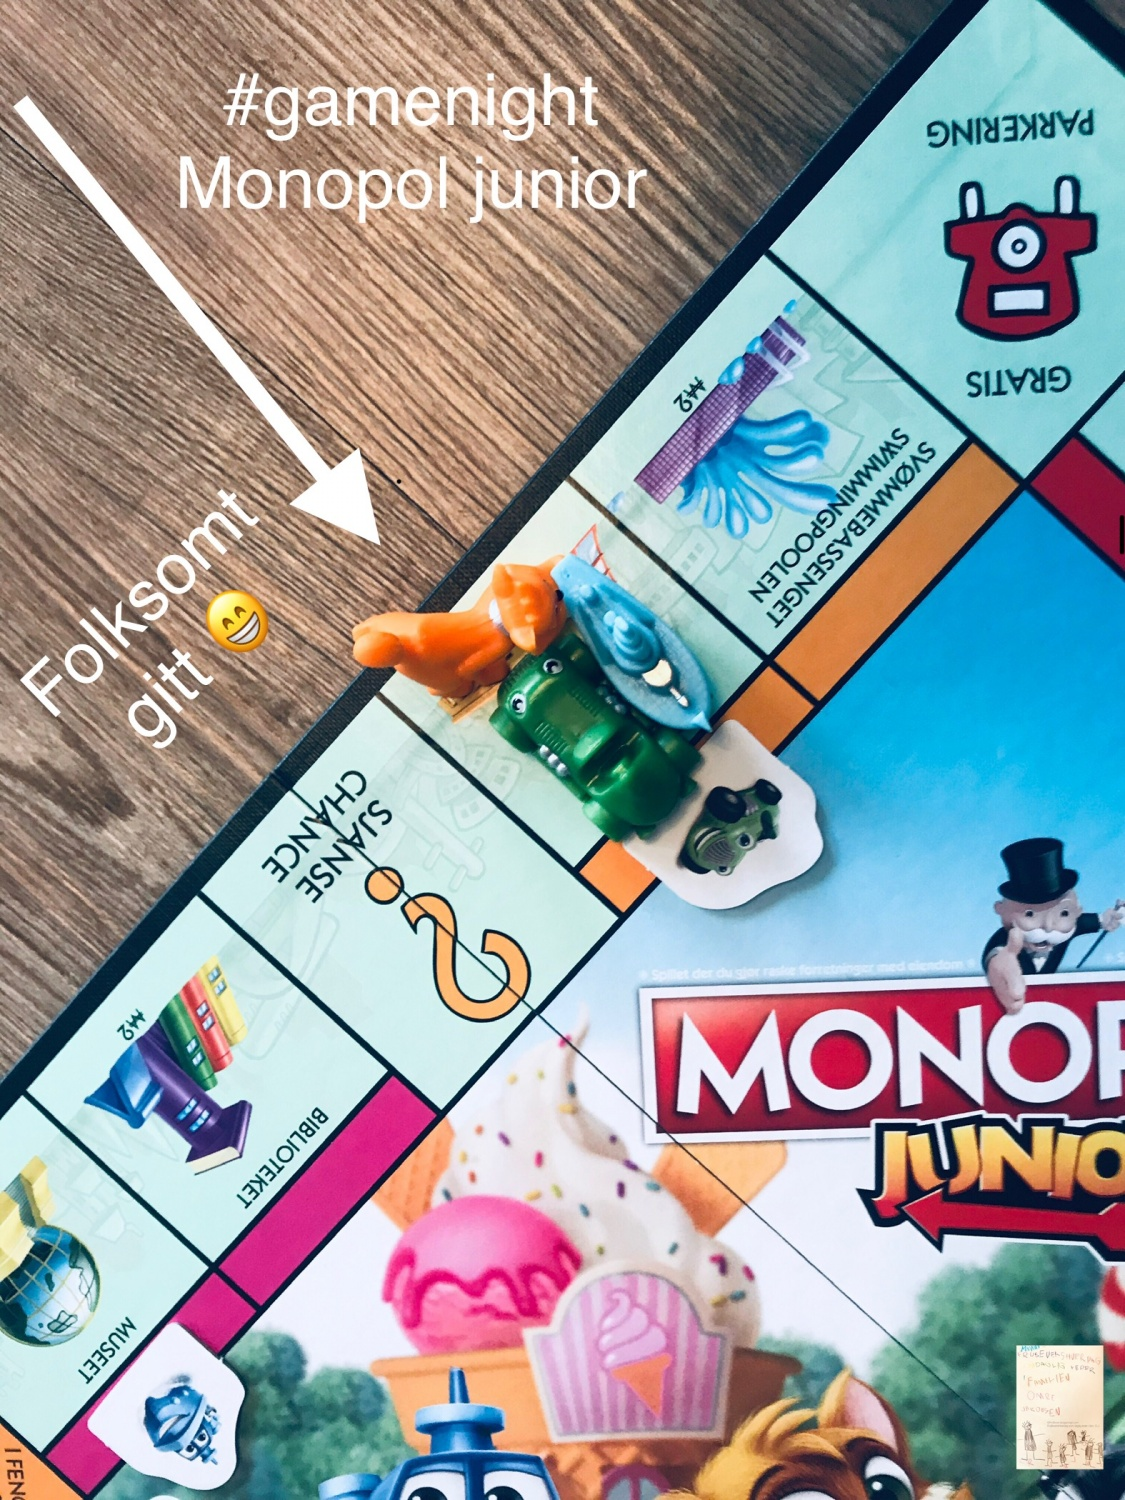 Monopol junior // game night @frubevershverdag